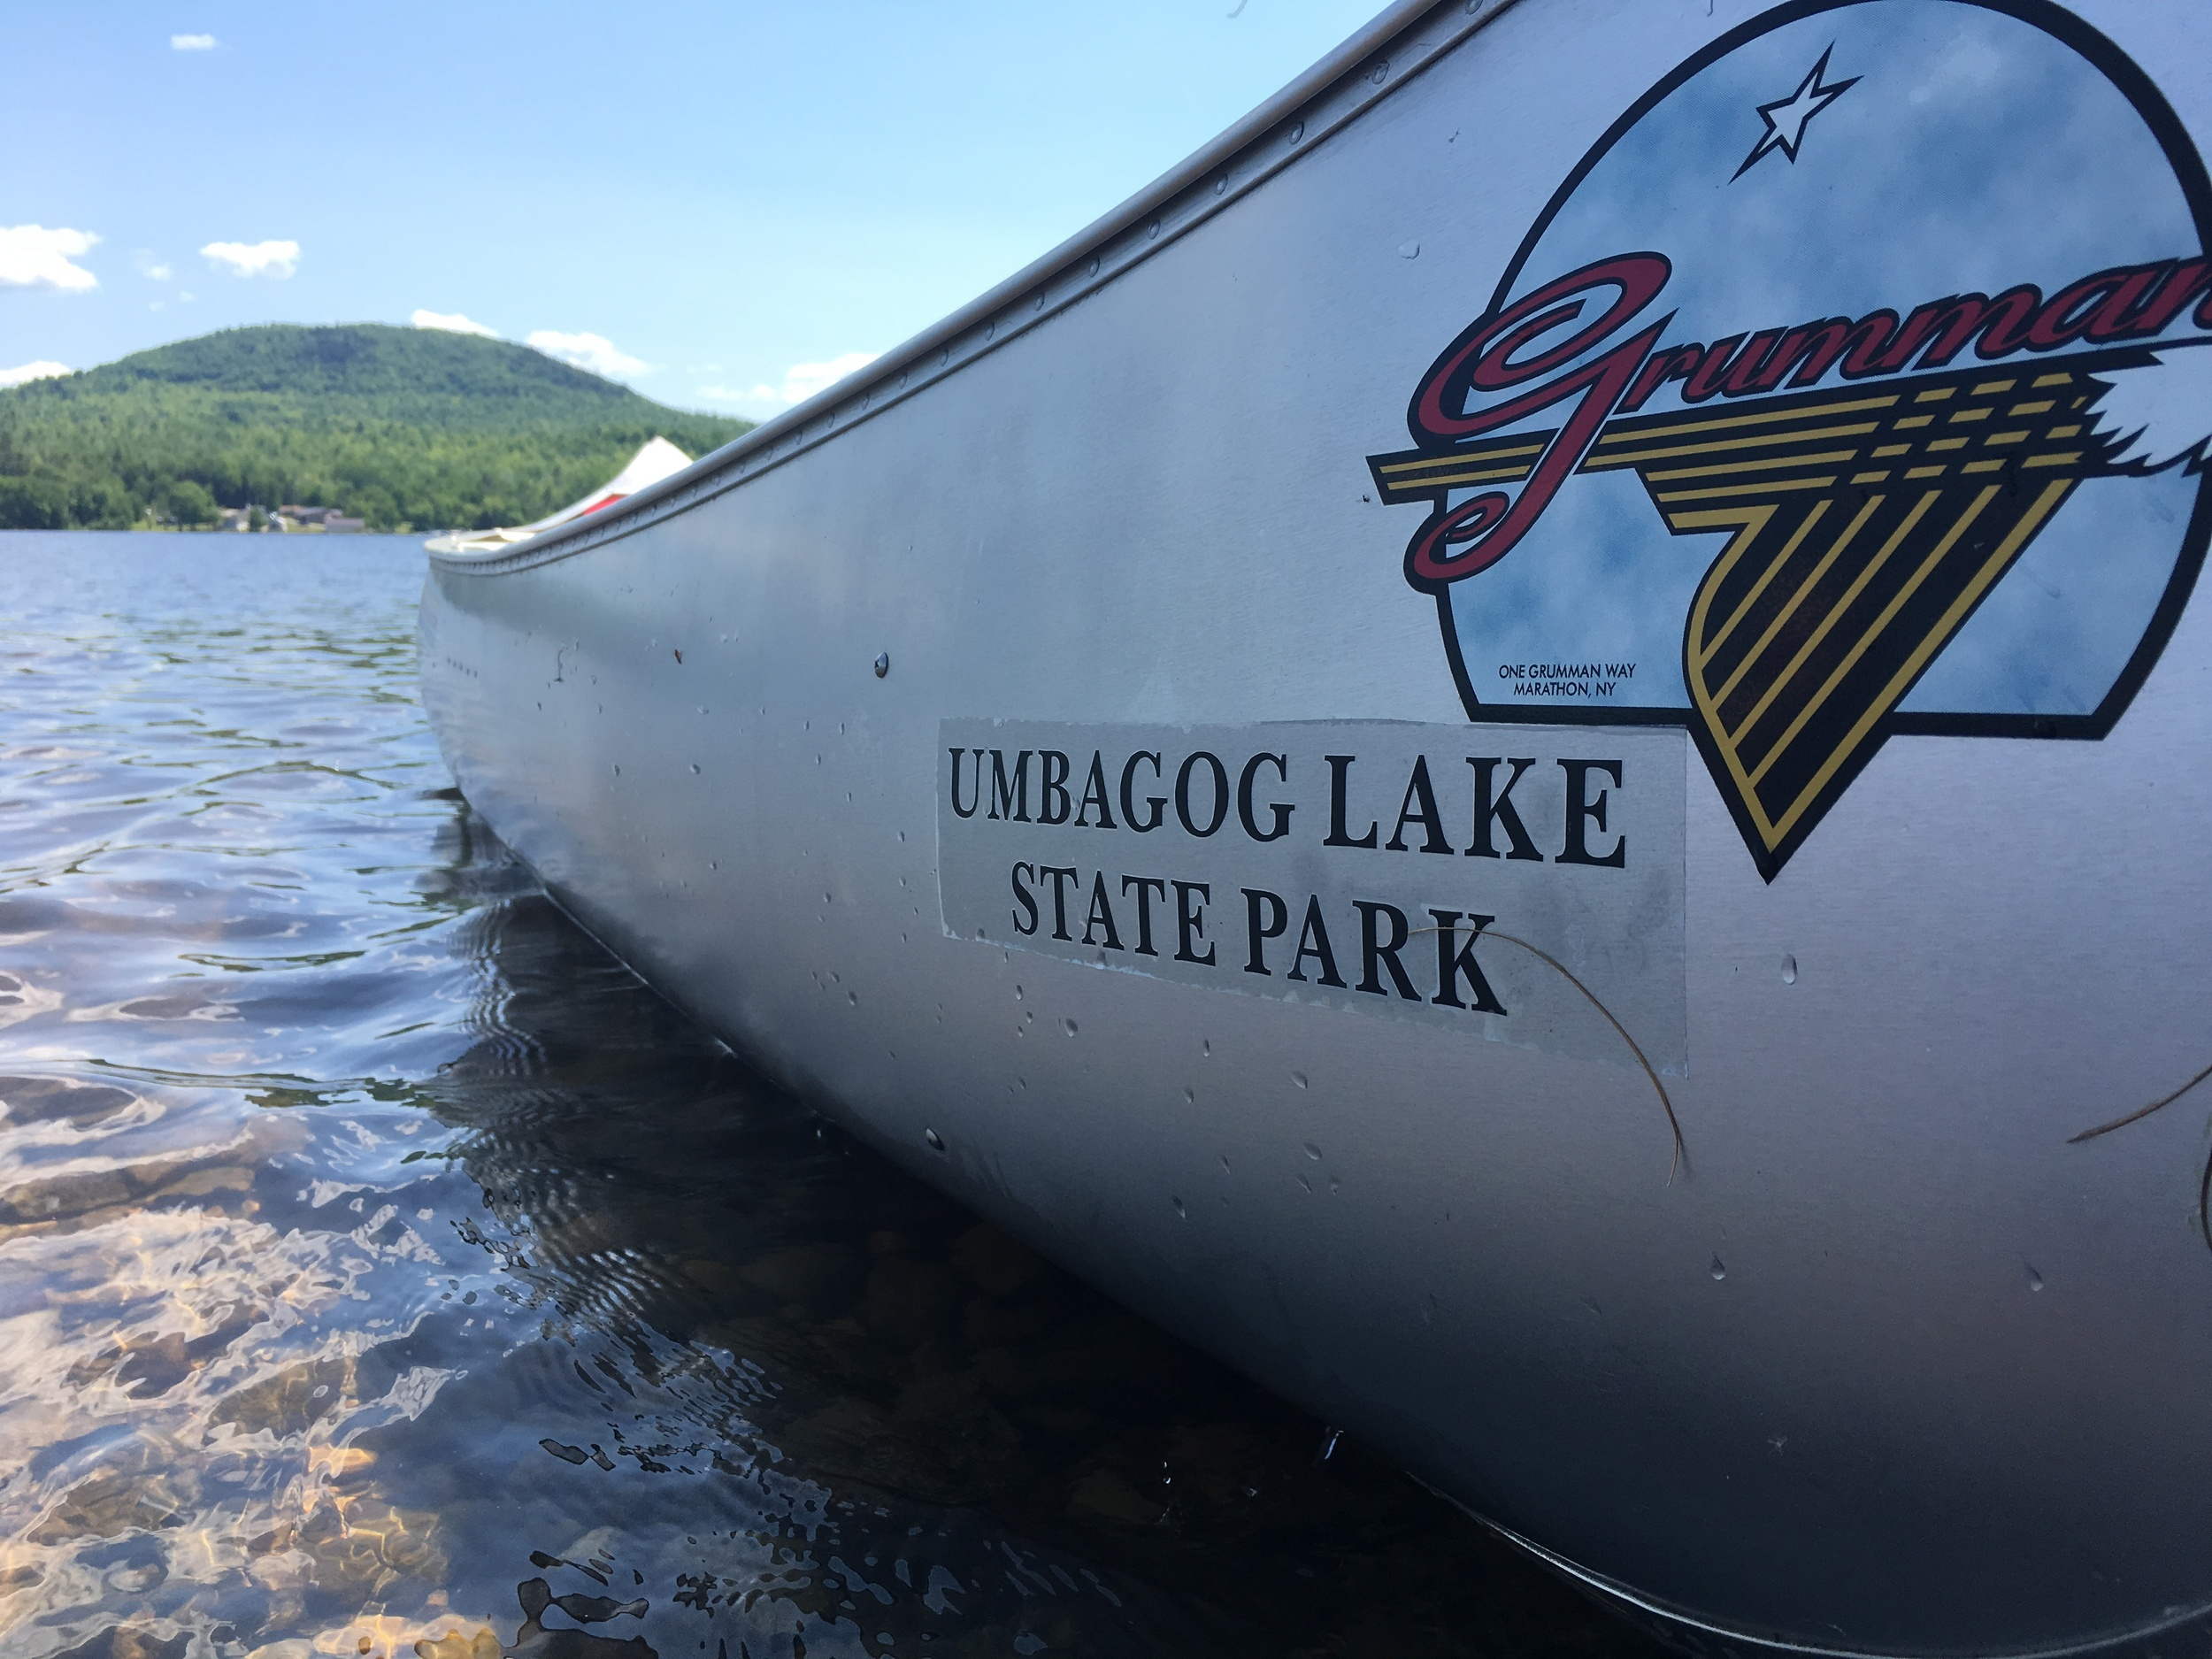 We rented a canoe for 1/2 day at Umbagog Lake -- well worth it to explore this 12-mile long stretch of pristine lake swimming, fishing and boating.